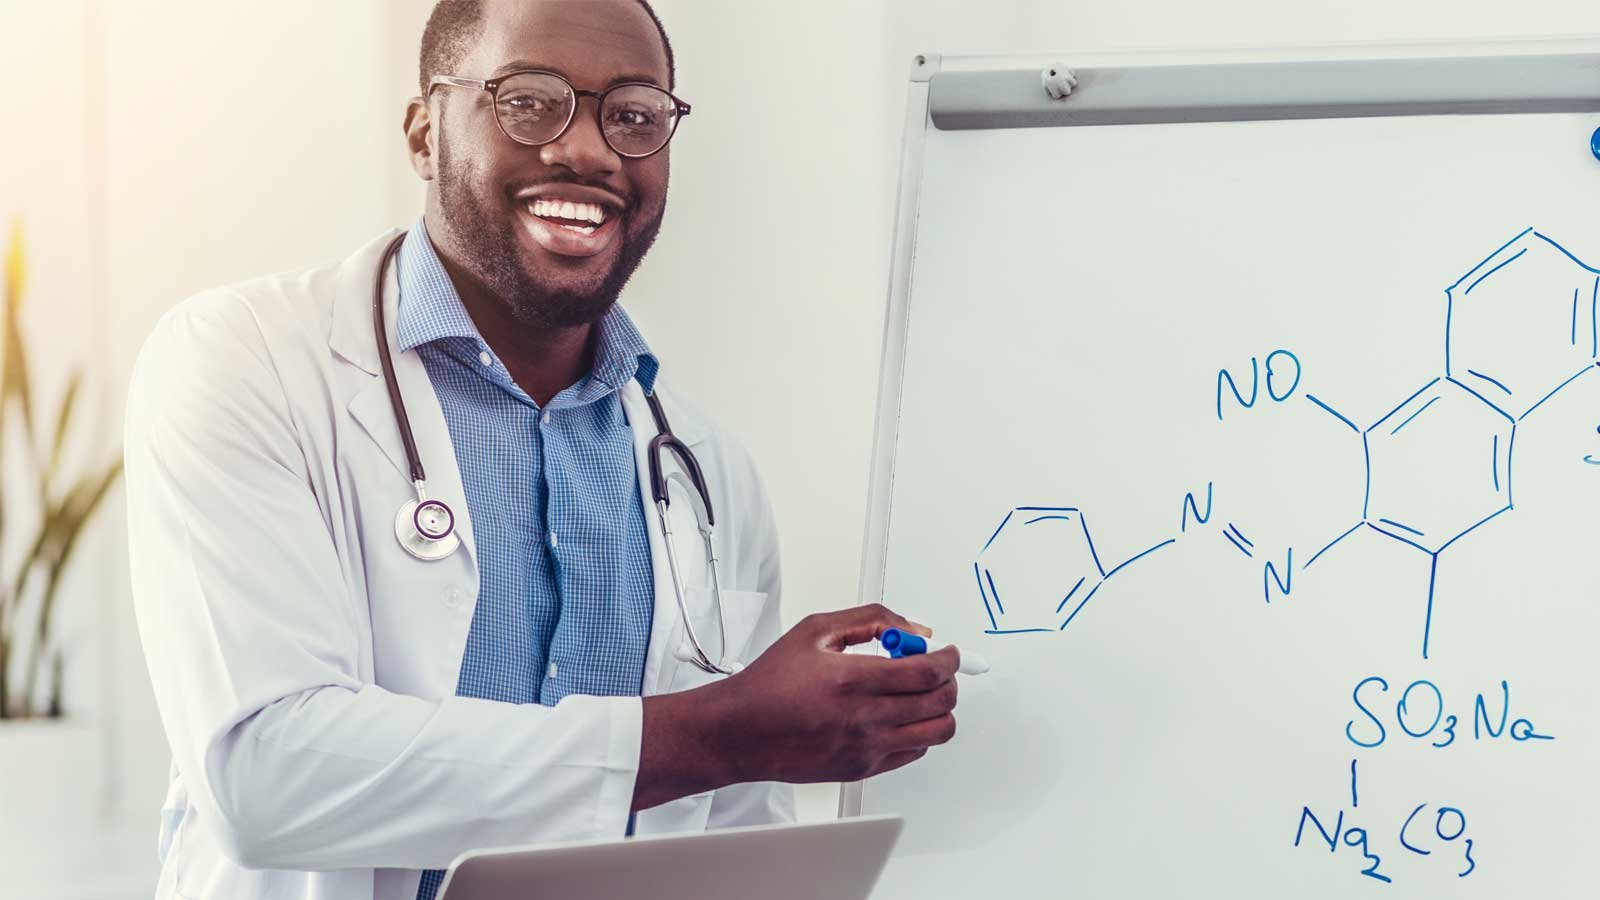 Smiling medical professional pointing toward chemical formula